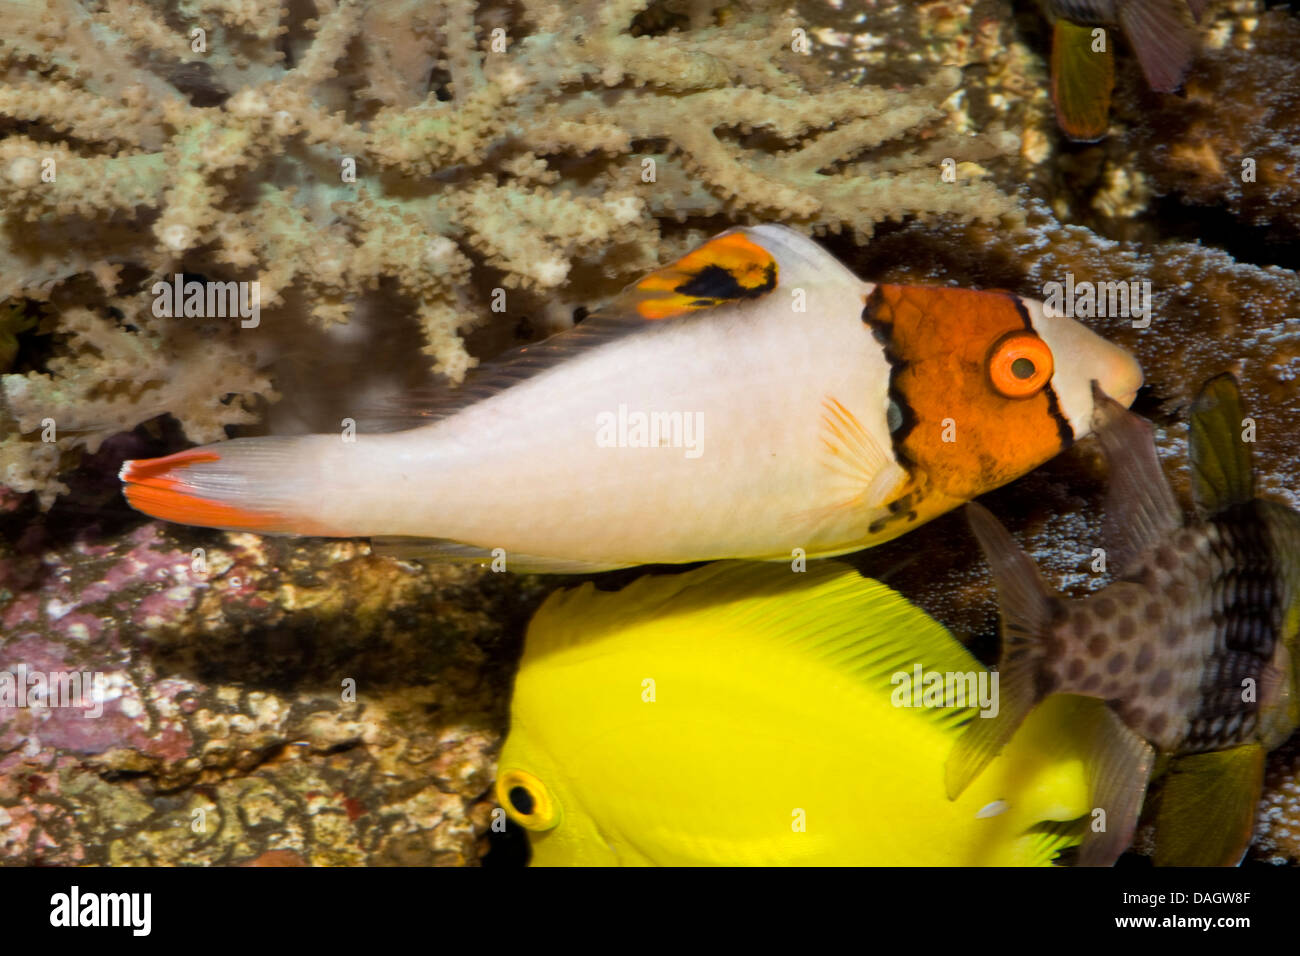 Bicolor Parrotfish (Cetoscarus bicolor), together with two other coral fishes Stock Photo